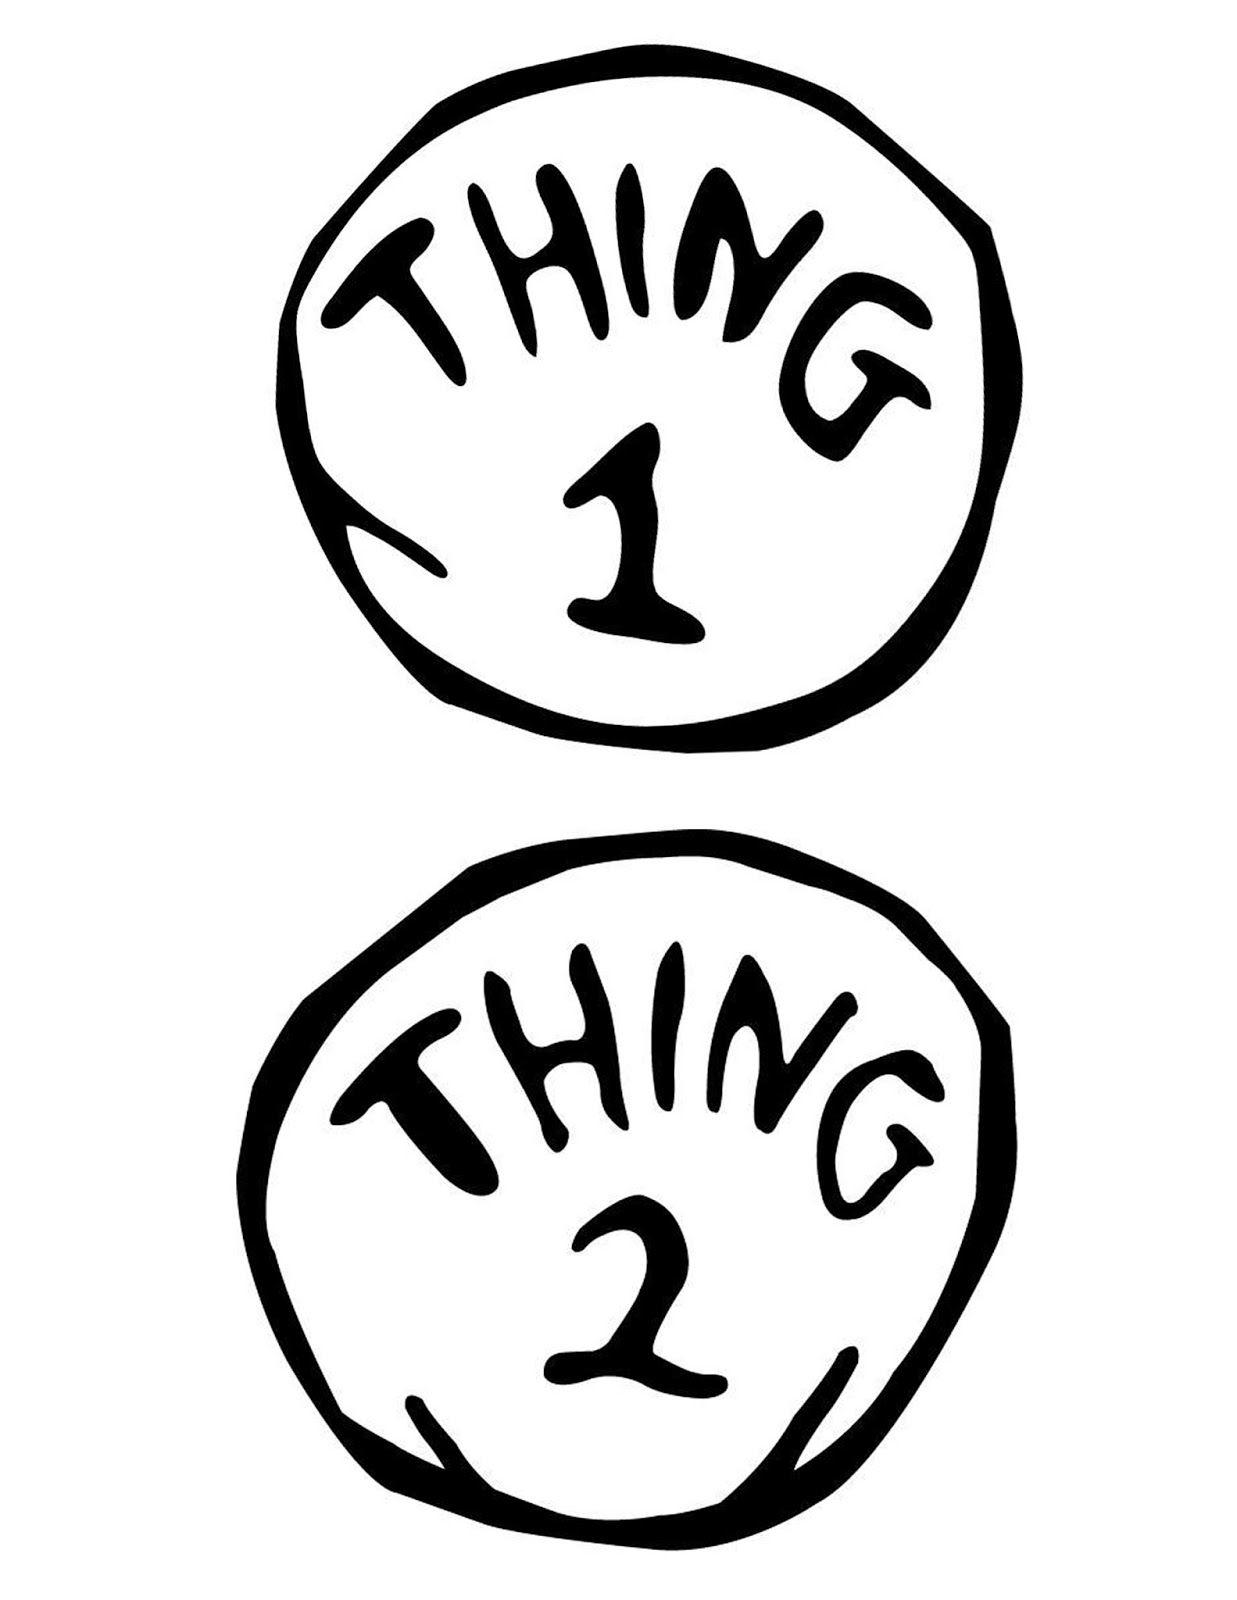 Thing 1 And Thing 2 Clip Art : thing, Thing, Printable, Image, ClipArt